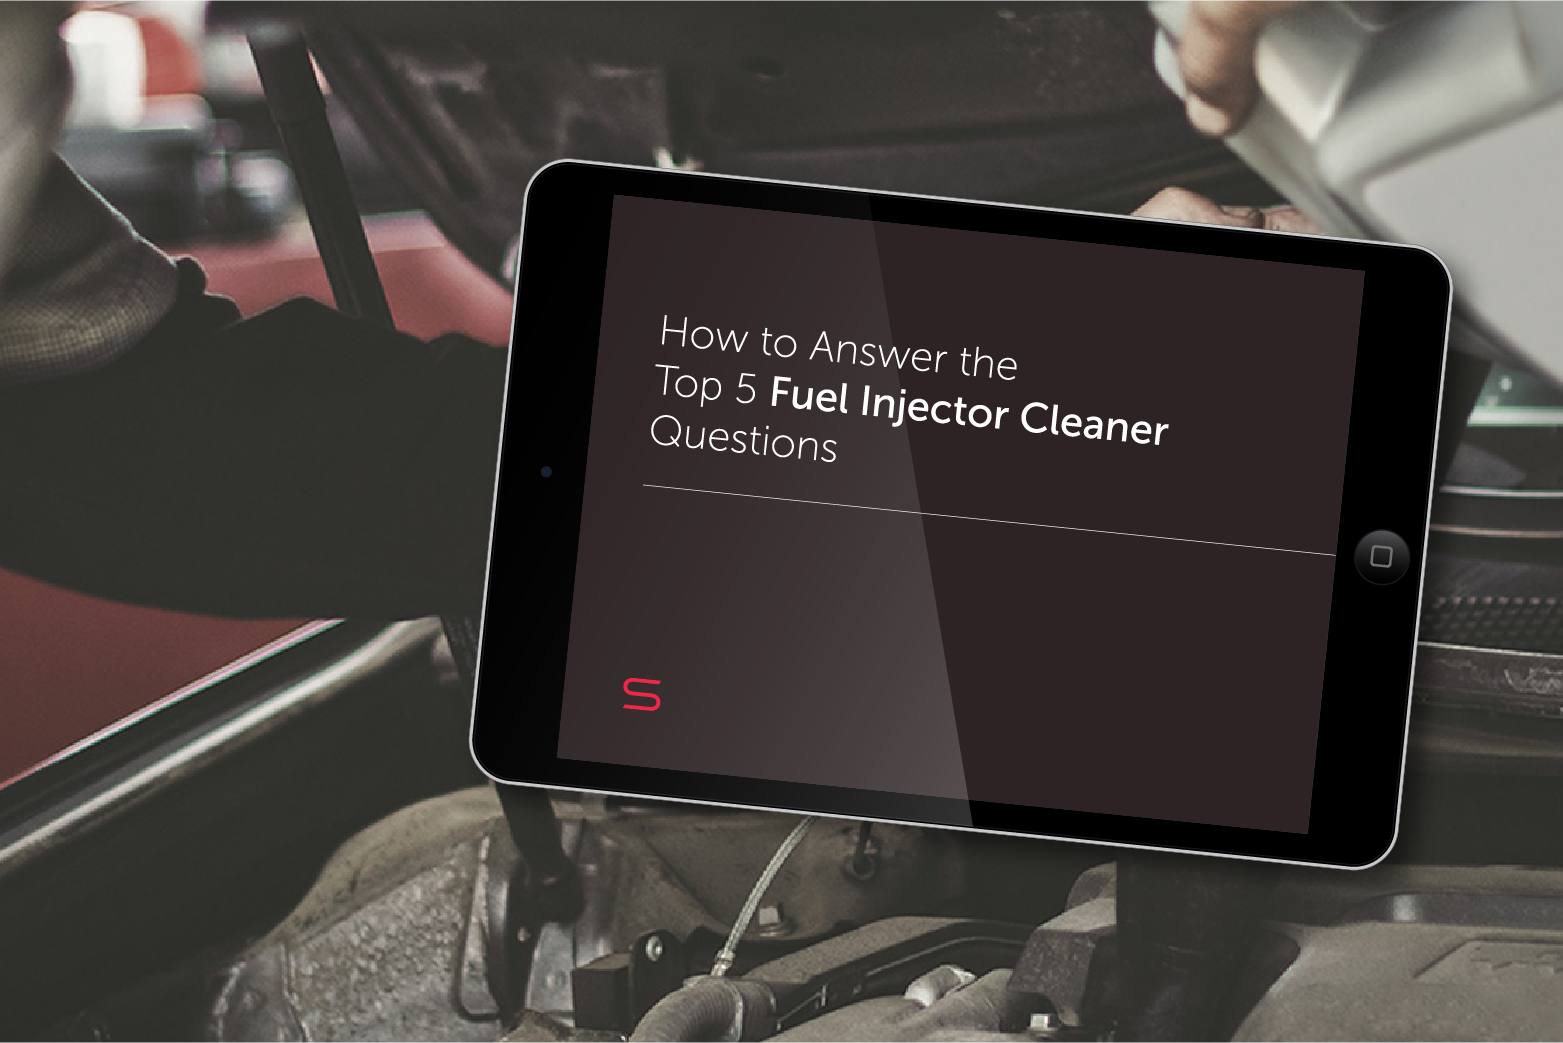 THIS MONTH'S GRAND PRIX PRODUCT - A closer look at our favourite products. This month, we're tackling the top 5 consumer questions about fuel injector cleaners, and how to answer them.